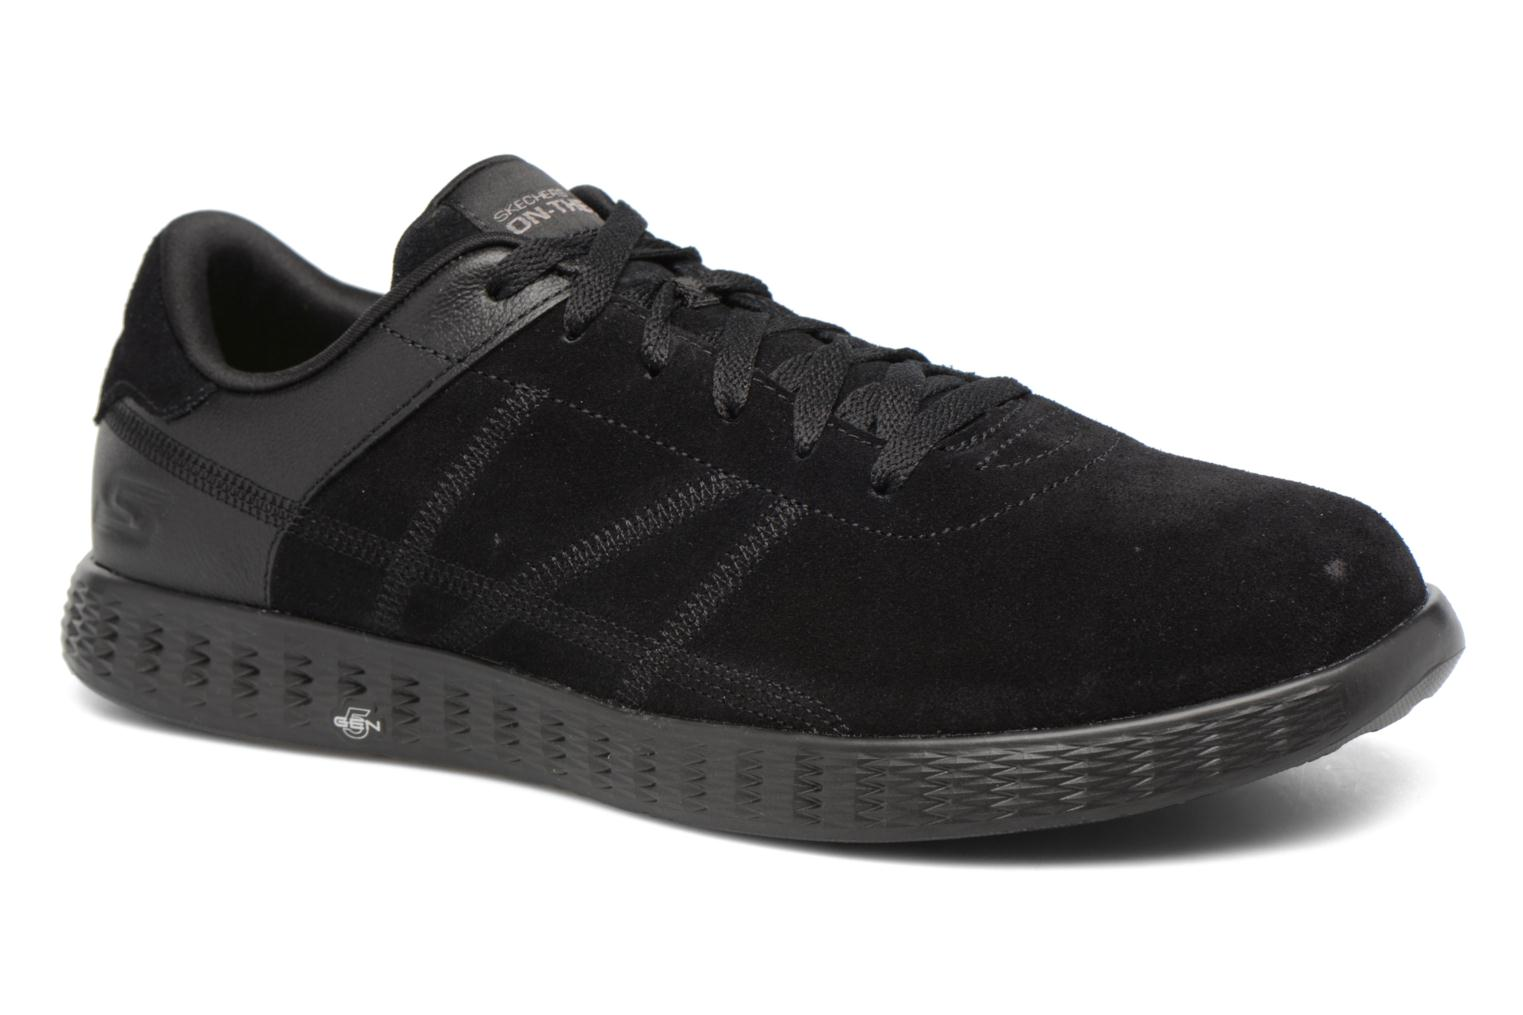 Marques Chaussure homme Skechers homme On-the-go Glide Sharp BBK